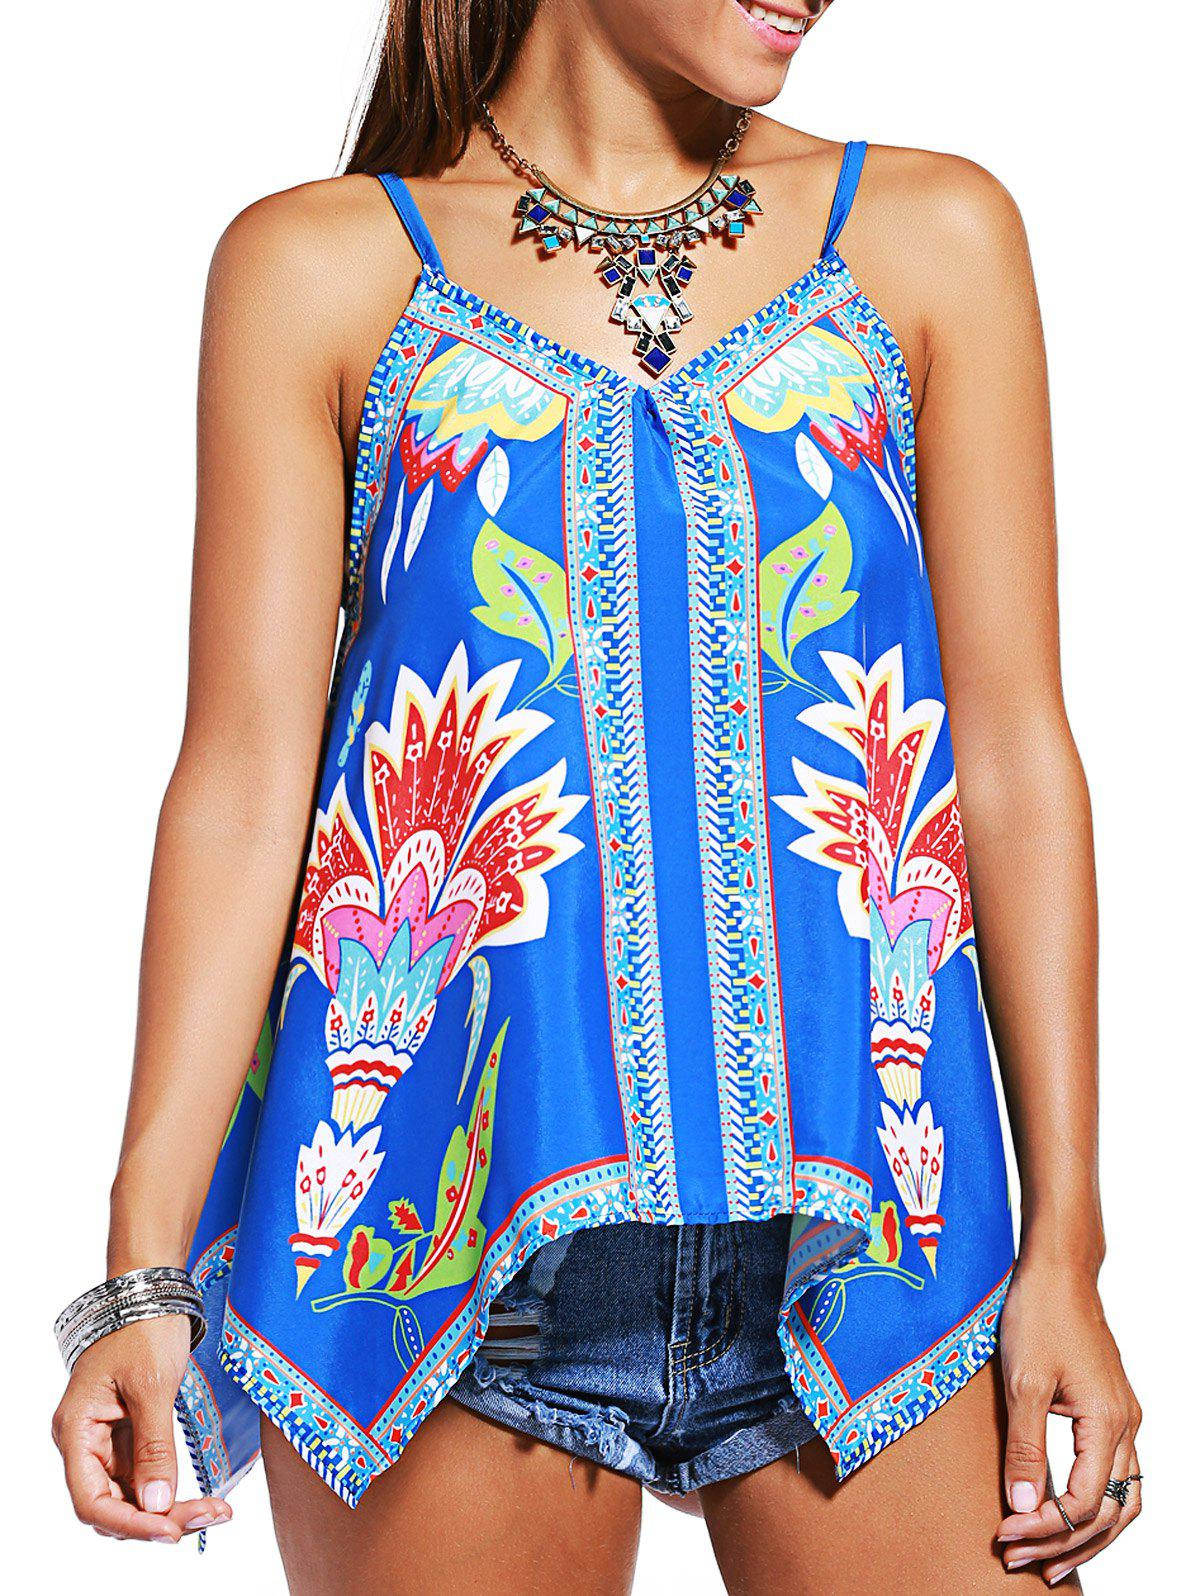 Charming Spaghetti Strap Asymmetrical Printed Women's Tank Top